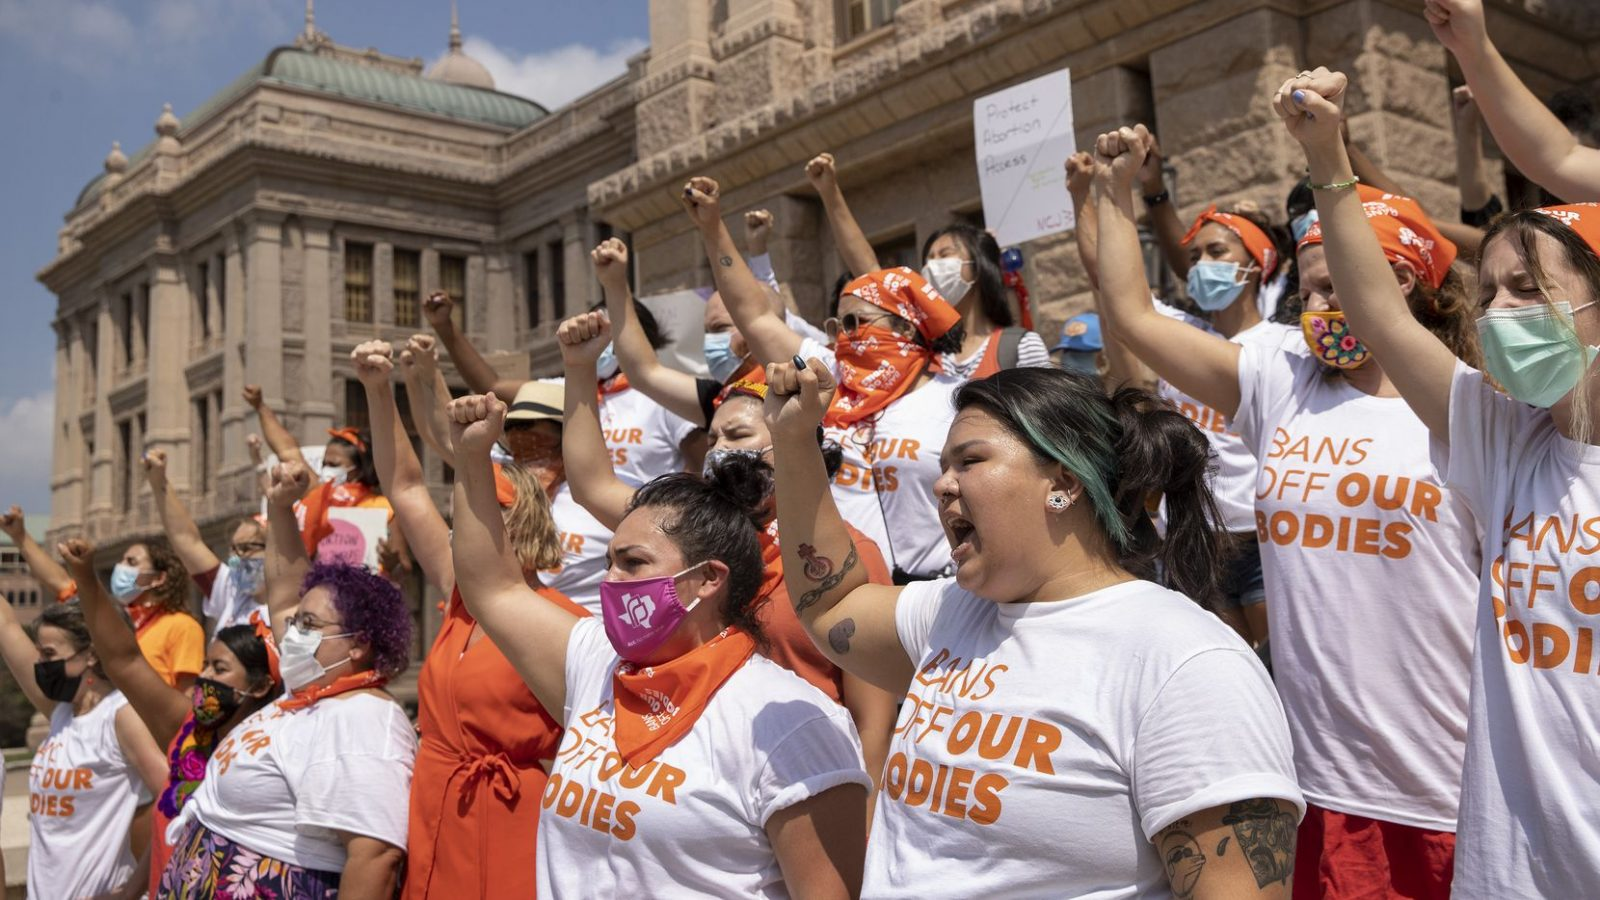 Supreme Court Inadvertently Supports Vigilante Justice In Texas Abortion Law Case